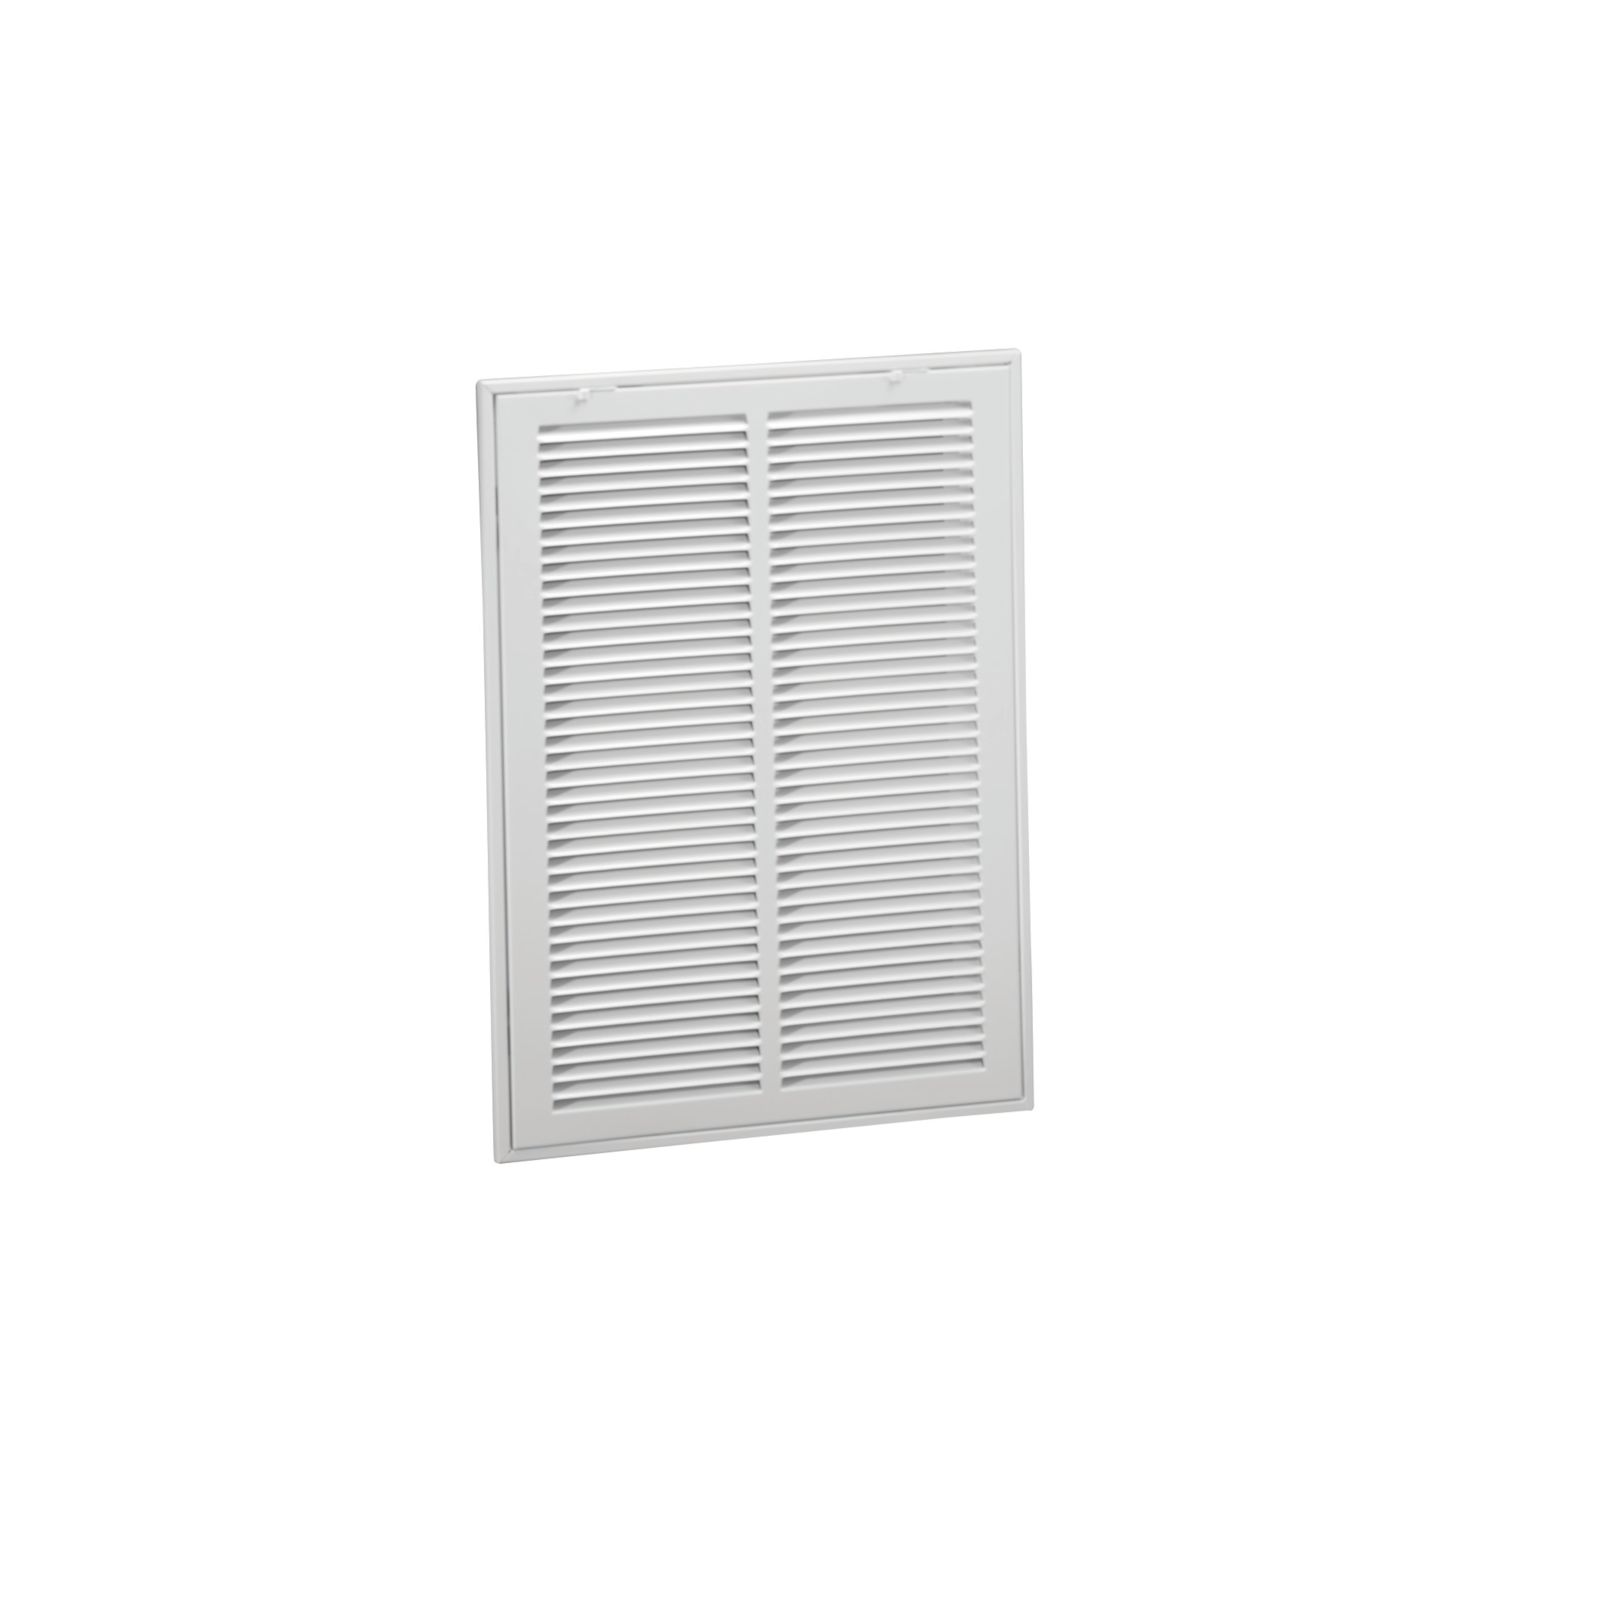 "Hart & Cooley 043504 - #673 Steel Return Air Filter Grille, White Finish, 14"" X 14"""